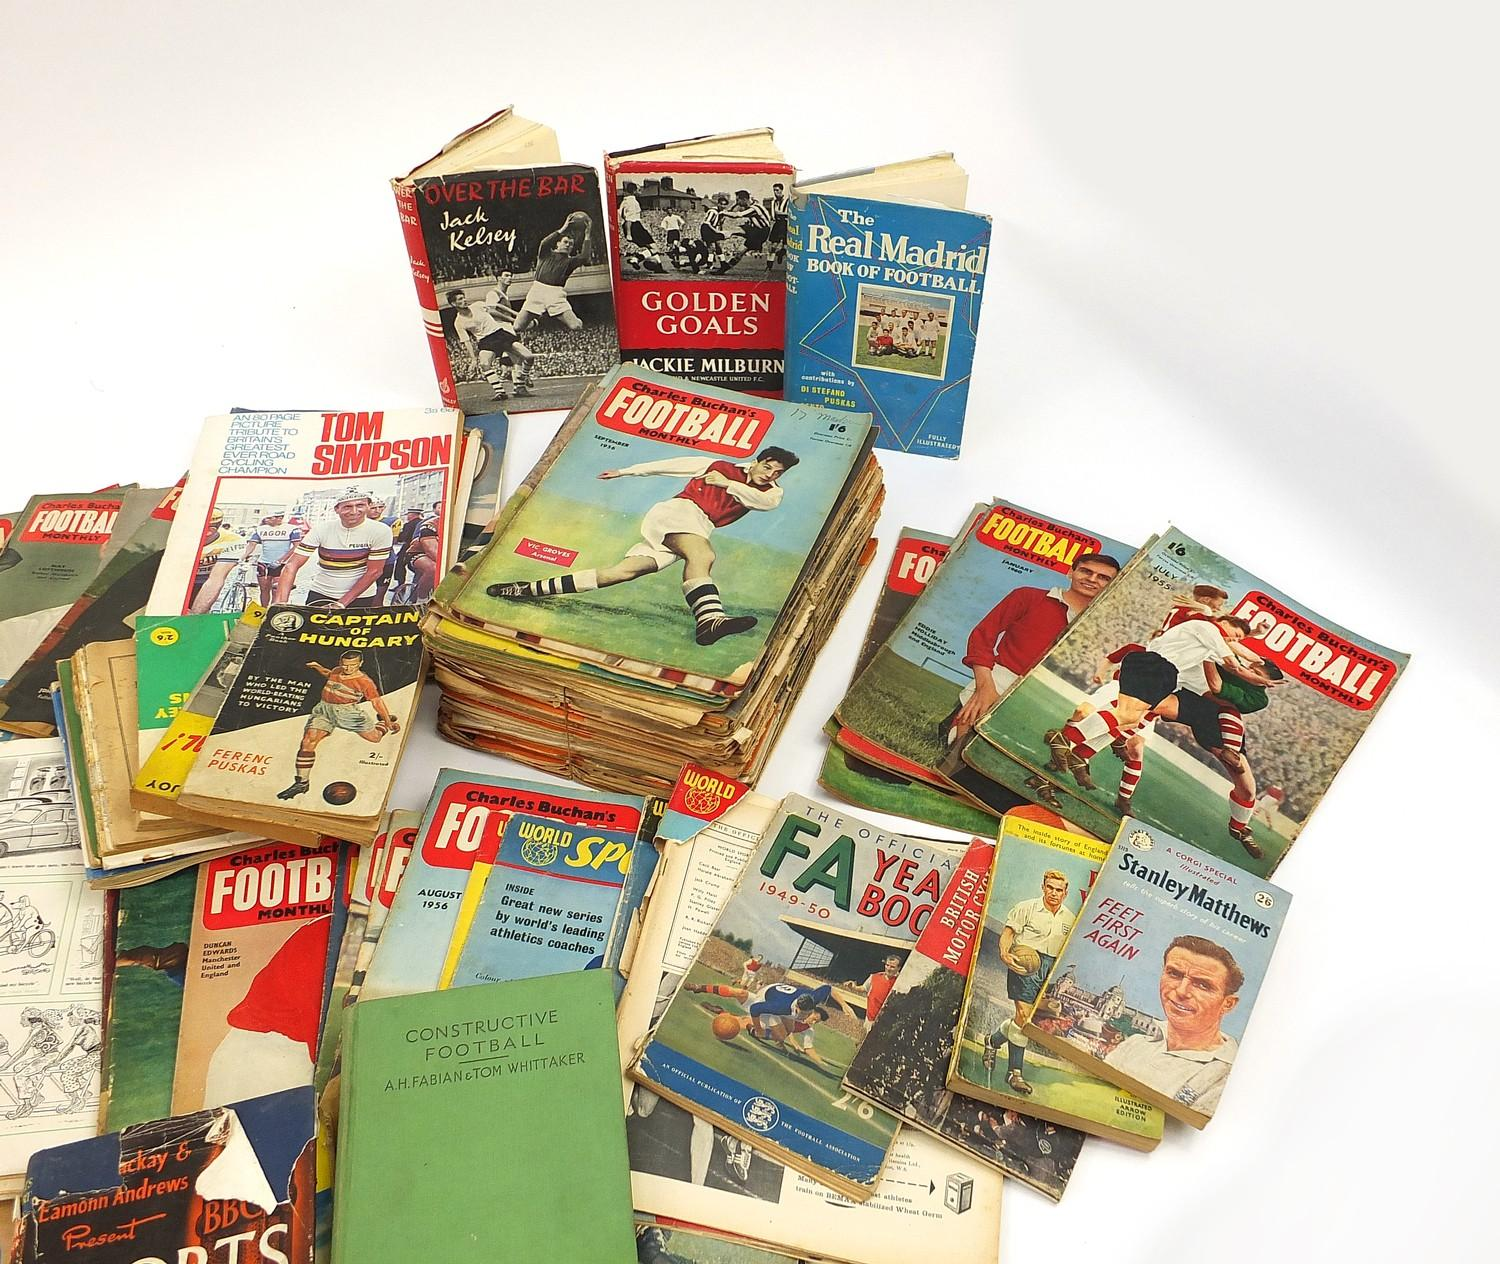 Collection of vintage and later football related books and magazines including The Real Madrid and - Image 4 of 7